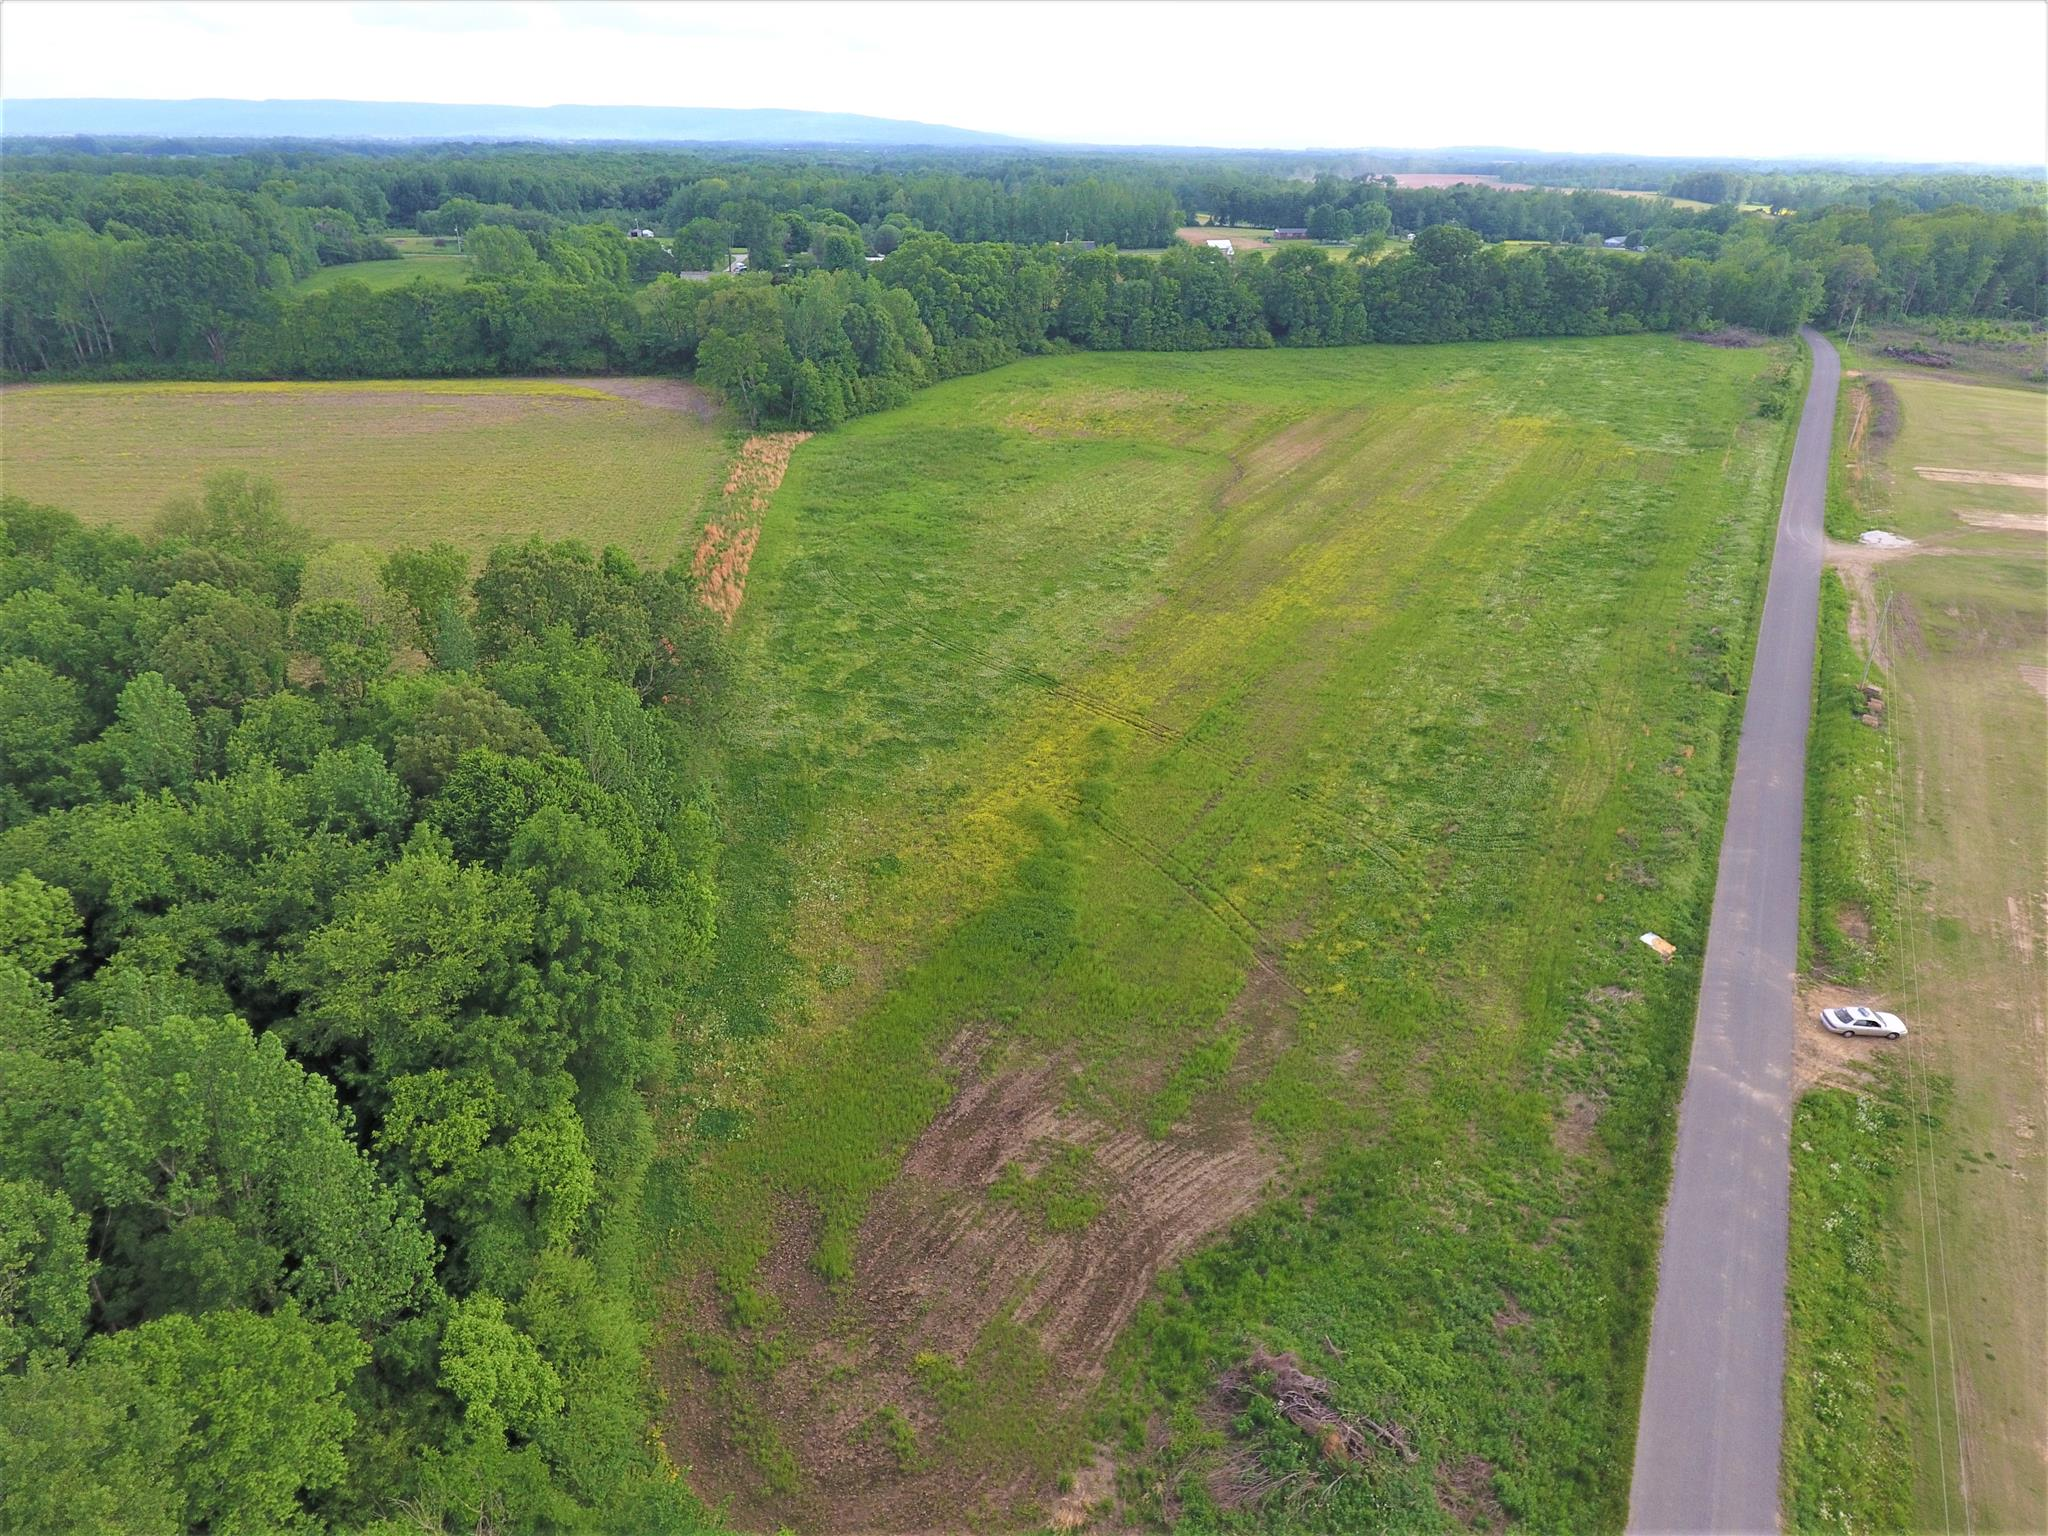 12 Brassfield Rd (12 Acres), Hillsboro, TN 37342 - Hillsboro, TN real estate listing